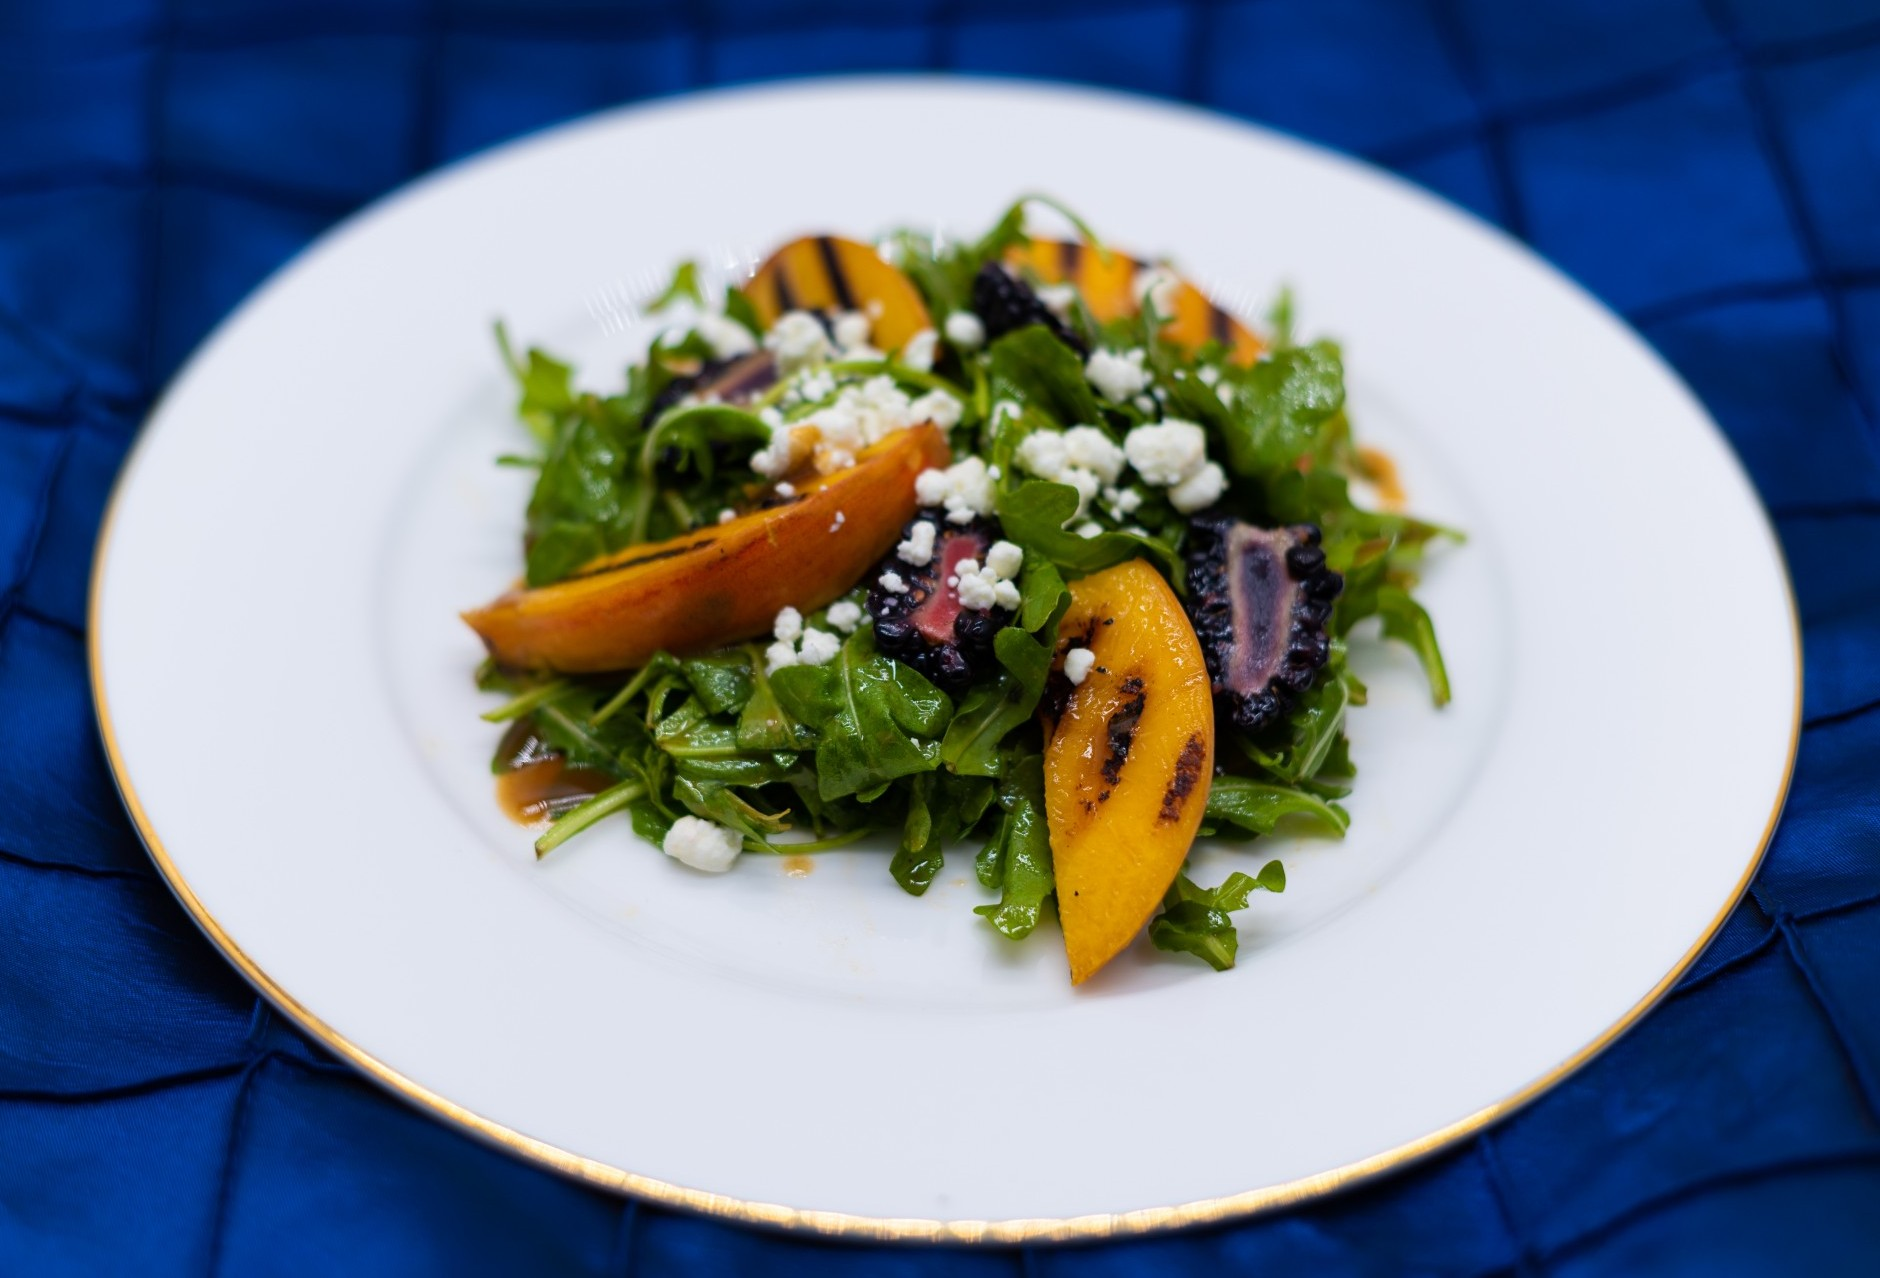 Grilled Peaches and Arugula Salad with Blackberries Crumbled Goat Cheese and Balsamic Vinegar Dressing